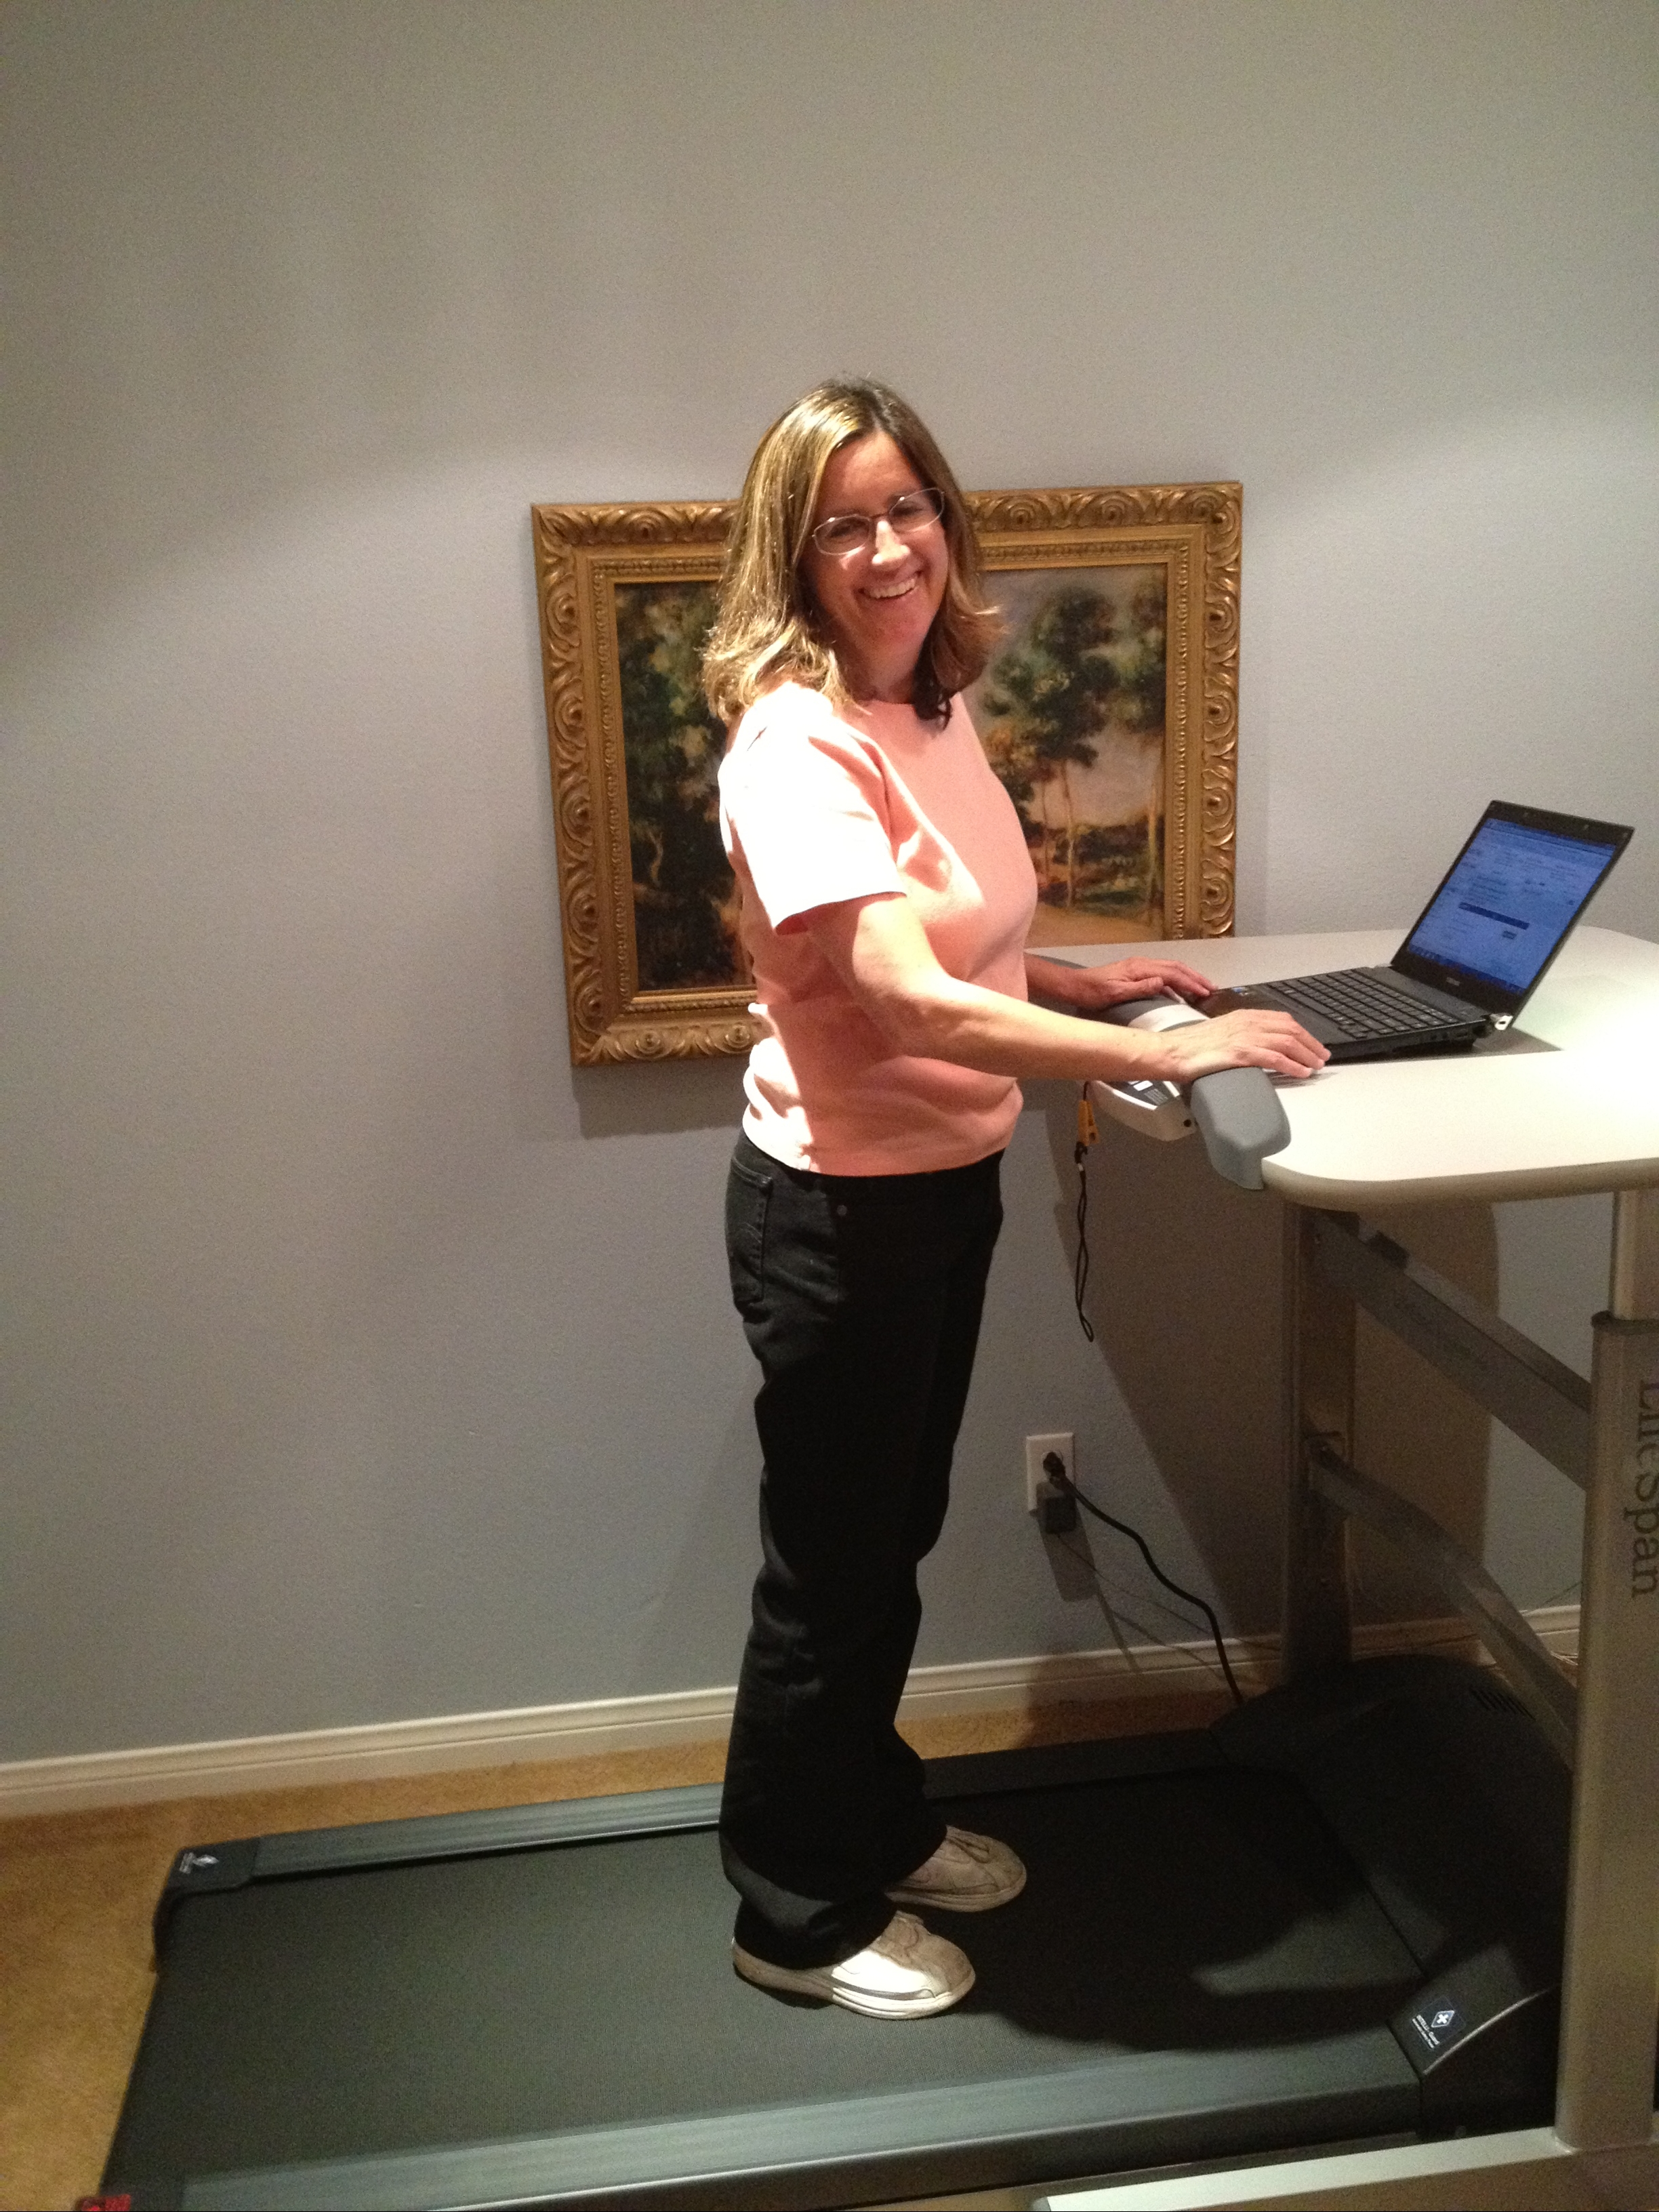 I've been using my new toy-- a treadmill desk-- every day since I got it a few weeks ago. I love it! I go only 1-1.5 miles an hour on it, but at that speed I barely know I'm exercising (well, I barely am exercising) and can surf the Net almost guilt-free. I was inspired by author Art Slade, who made his own treadmill desk a few years ago, and a study that sitting all day is really bad for your health. The best thing about the treadmill desk is that I can fit a large pizza on it. Kidding.